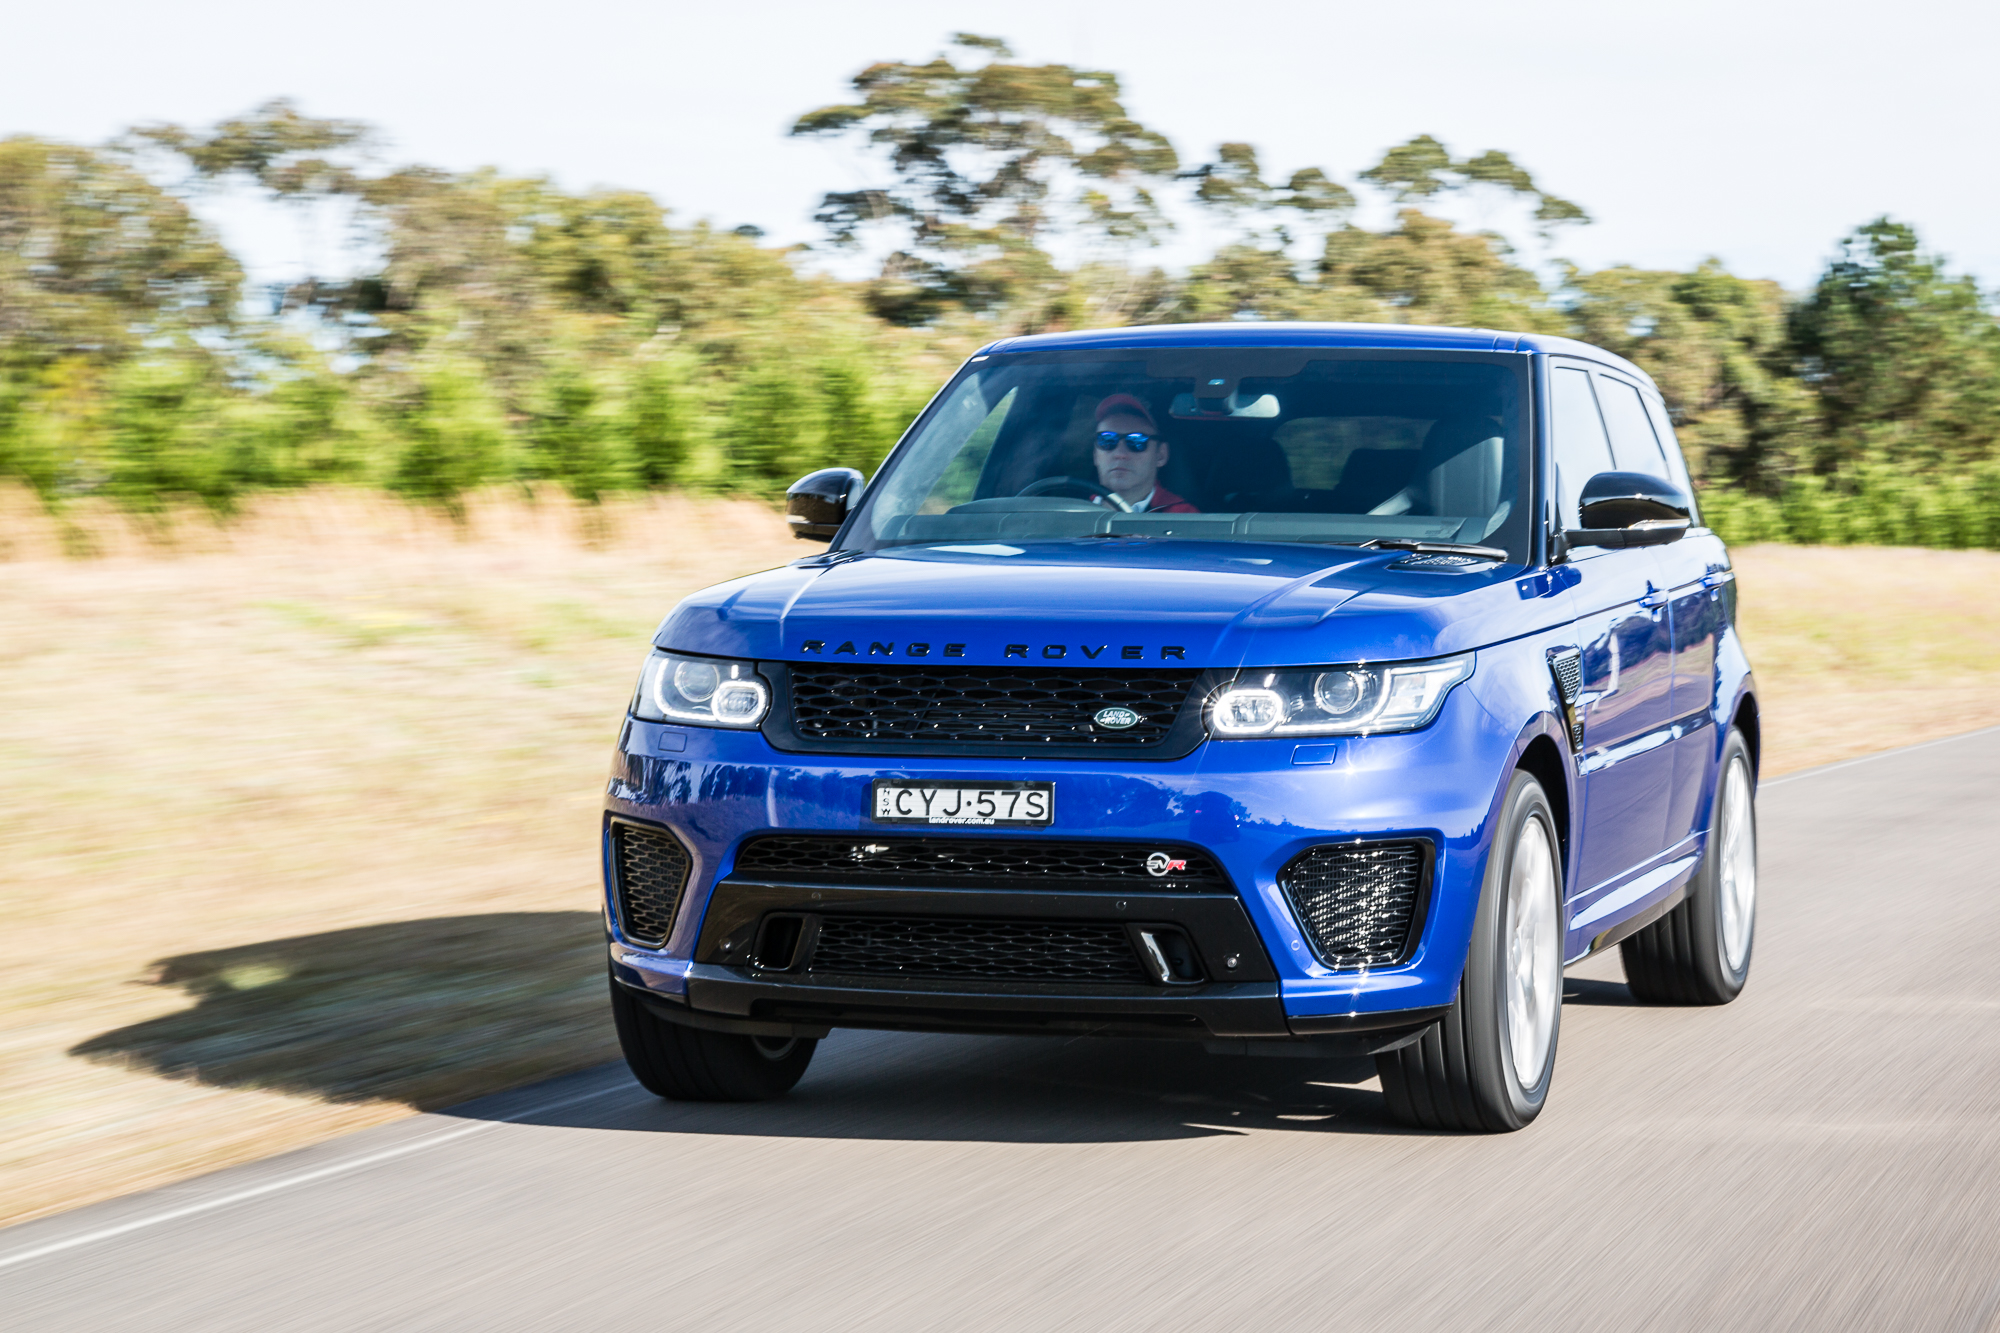 2015 range rover sport svr review photos caradvice. Black Bedroom Furniture Sets. Home Design Ideas